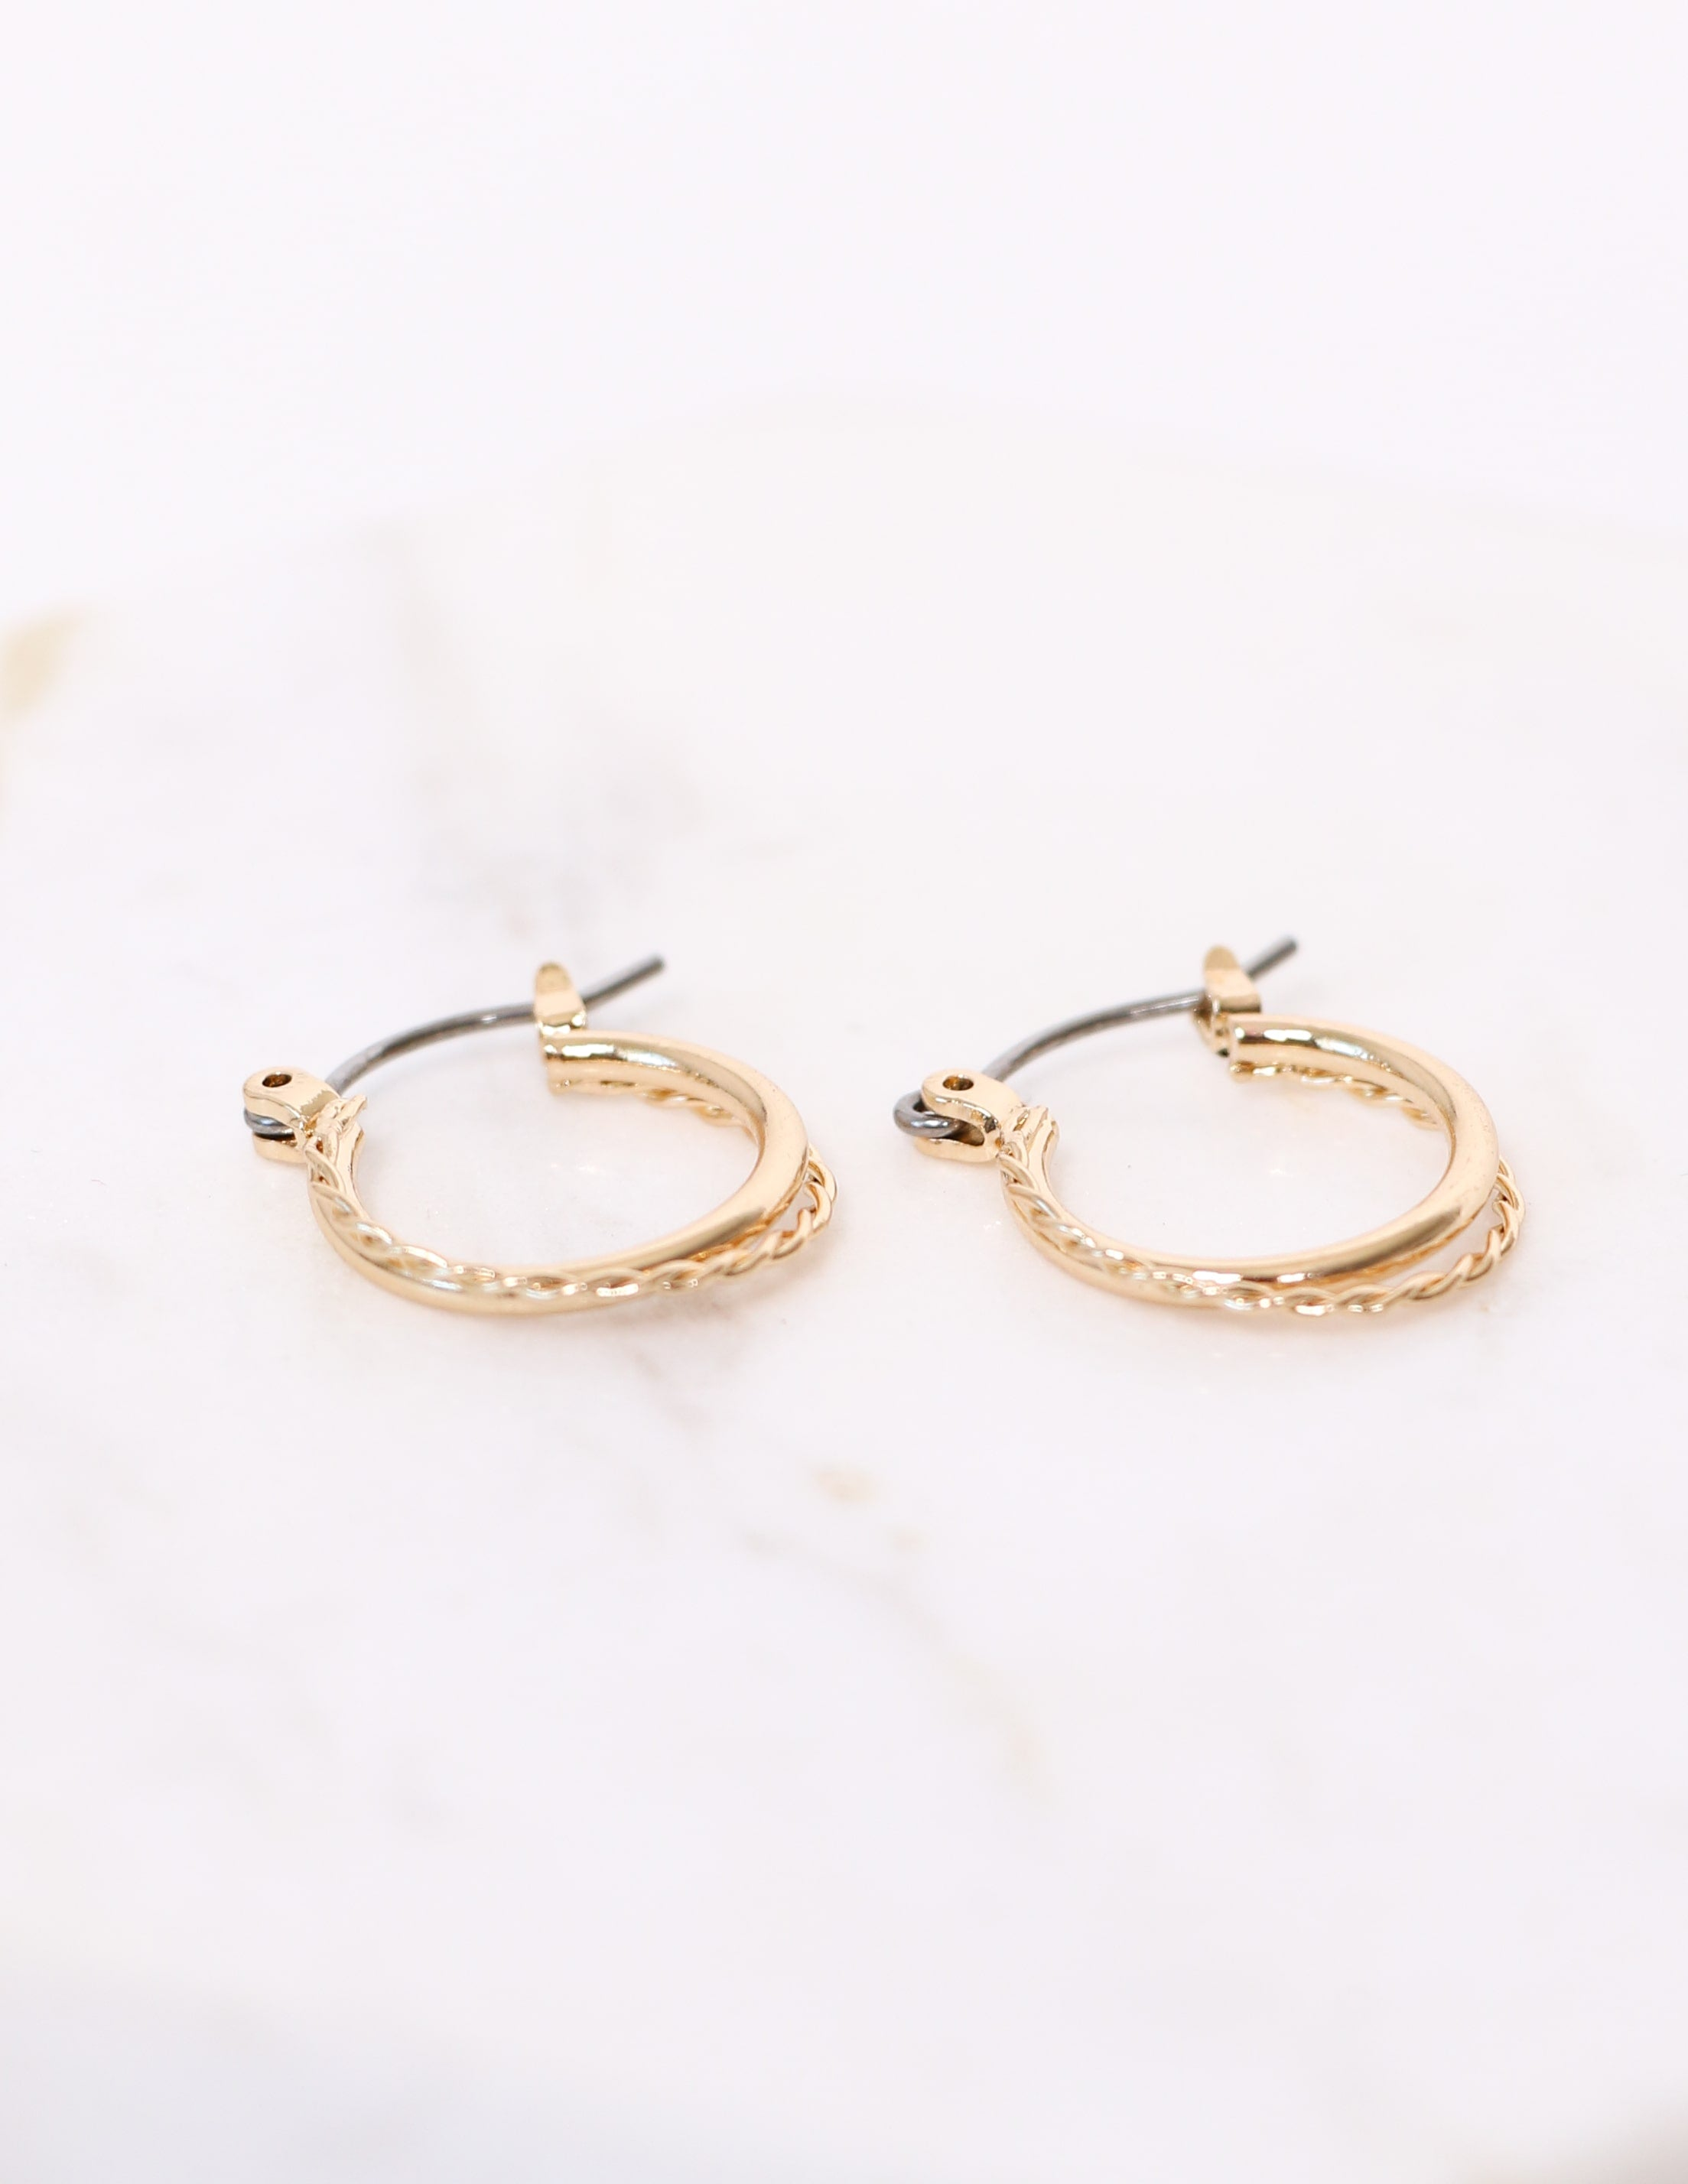 Gold two band hoop earrings on marble background - elle bleu